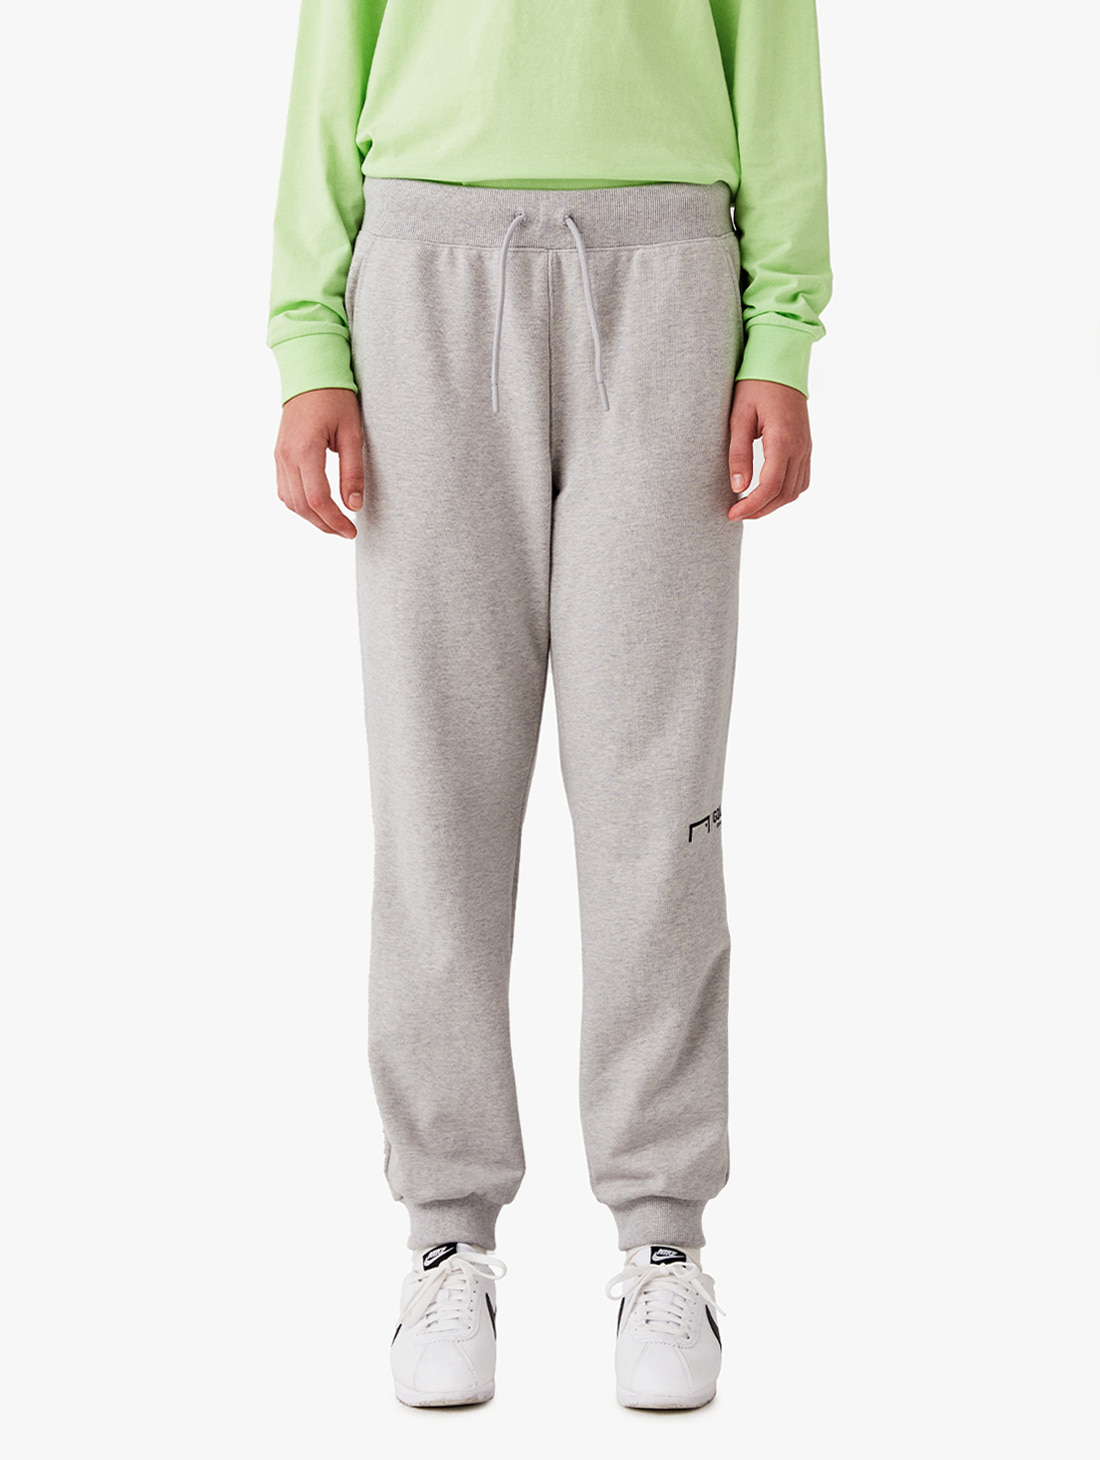 GOAL KNIT JOGGER PANTS 2.0 (3 Colors)